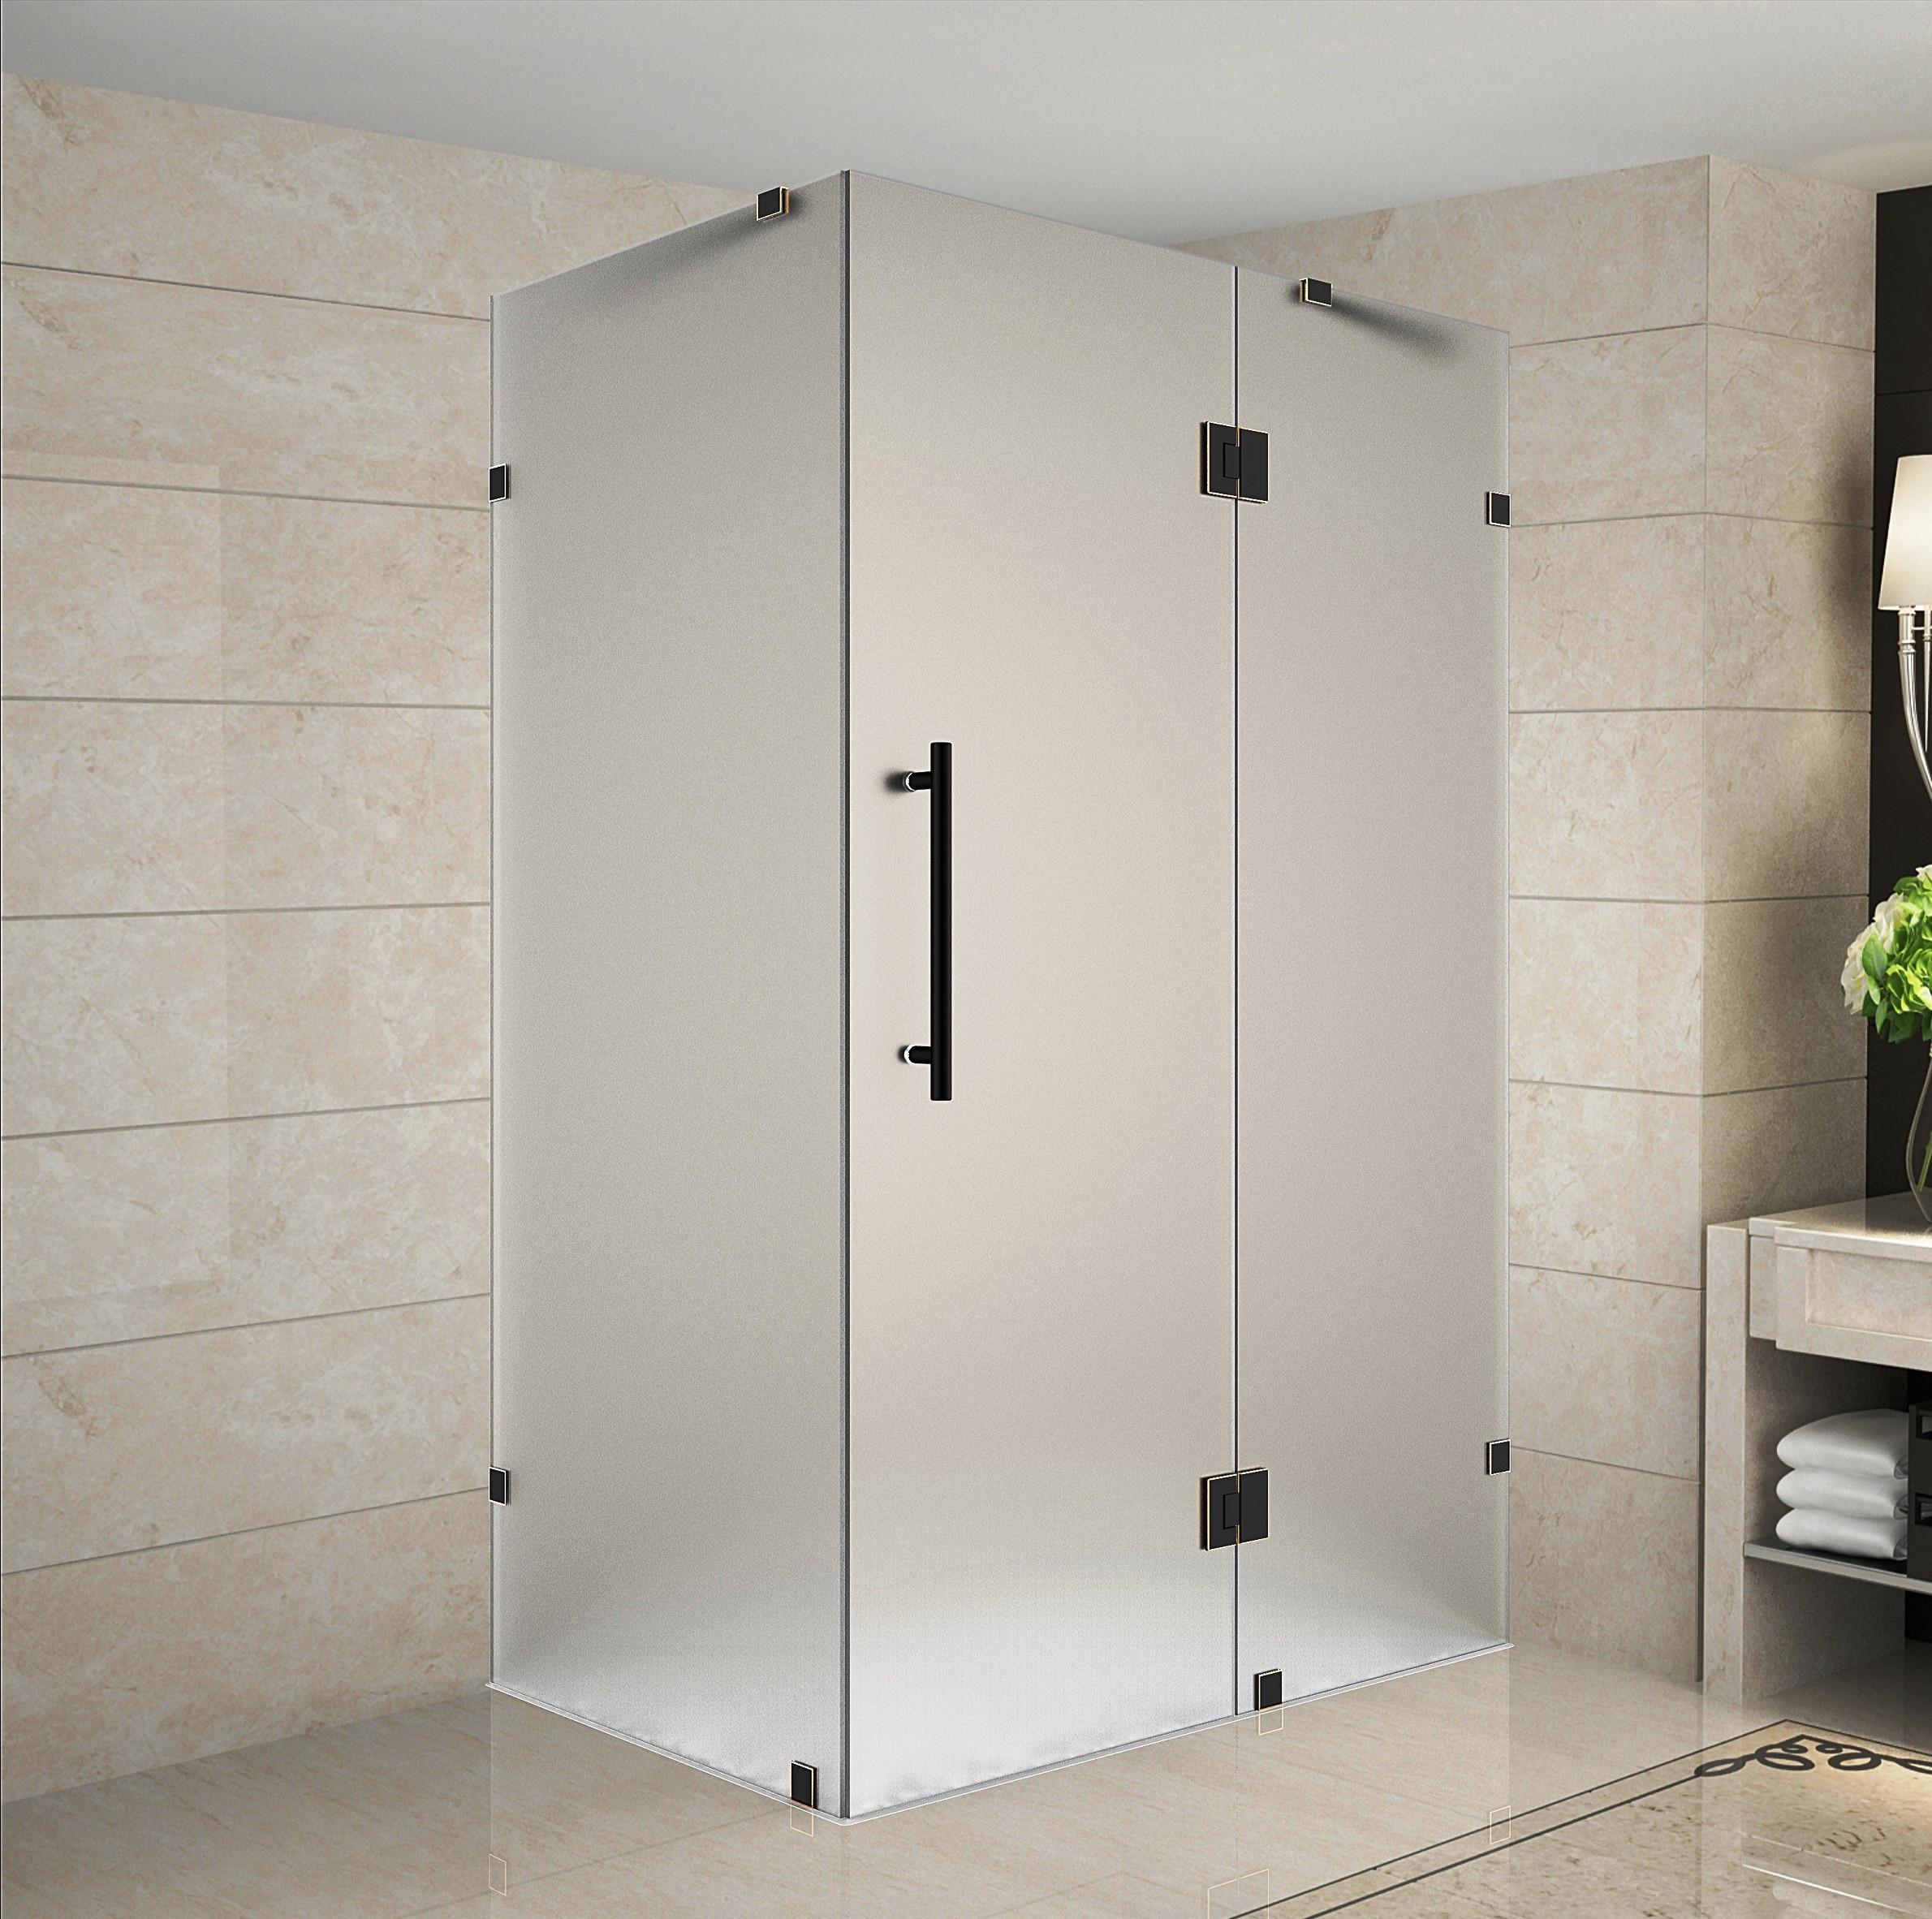 Aston Global SEN987F-CH-3332-10 Avalux Completely Frameless Frosted Glass Shower Enclosure In Chrome